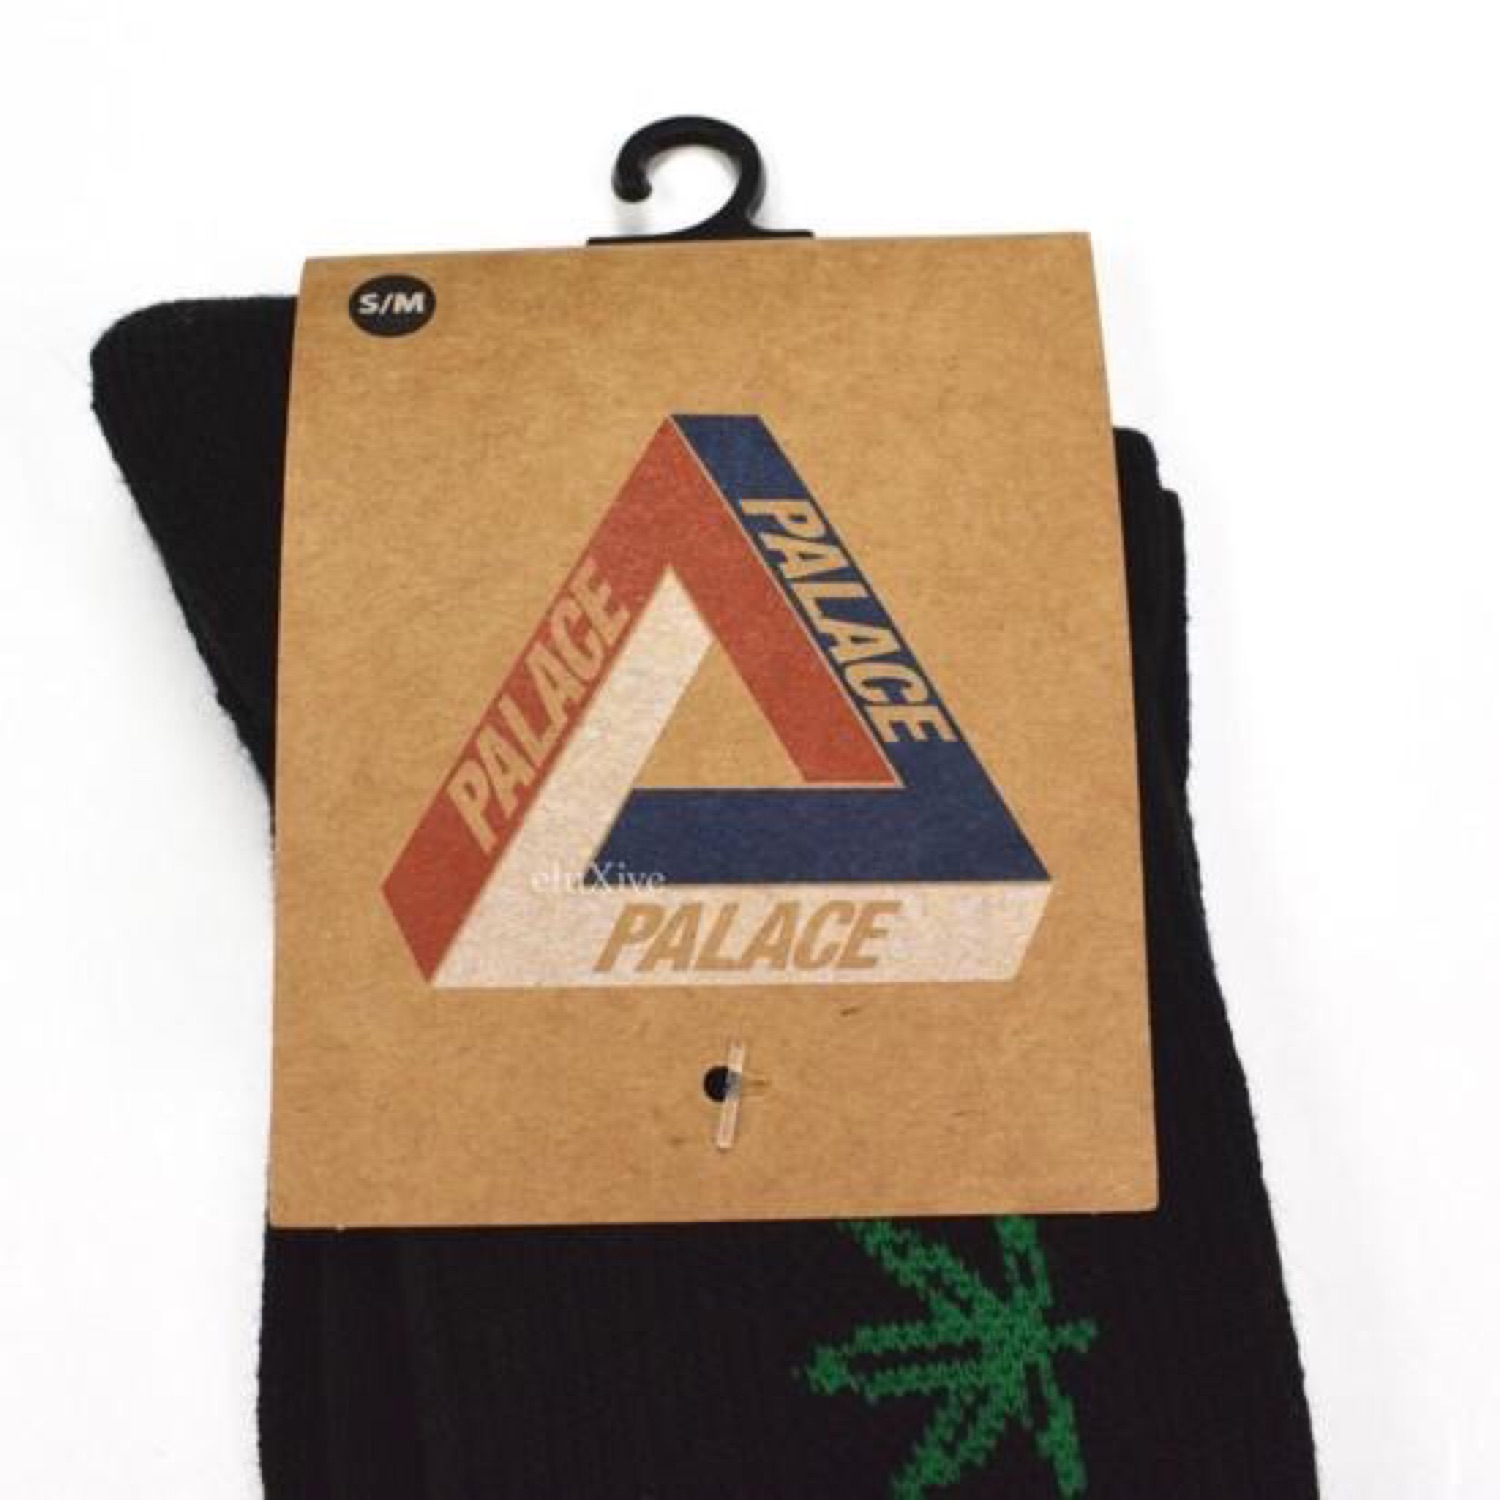 Palace 'Pwlwce' Logo Black Socks Ds